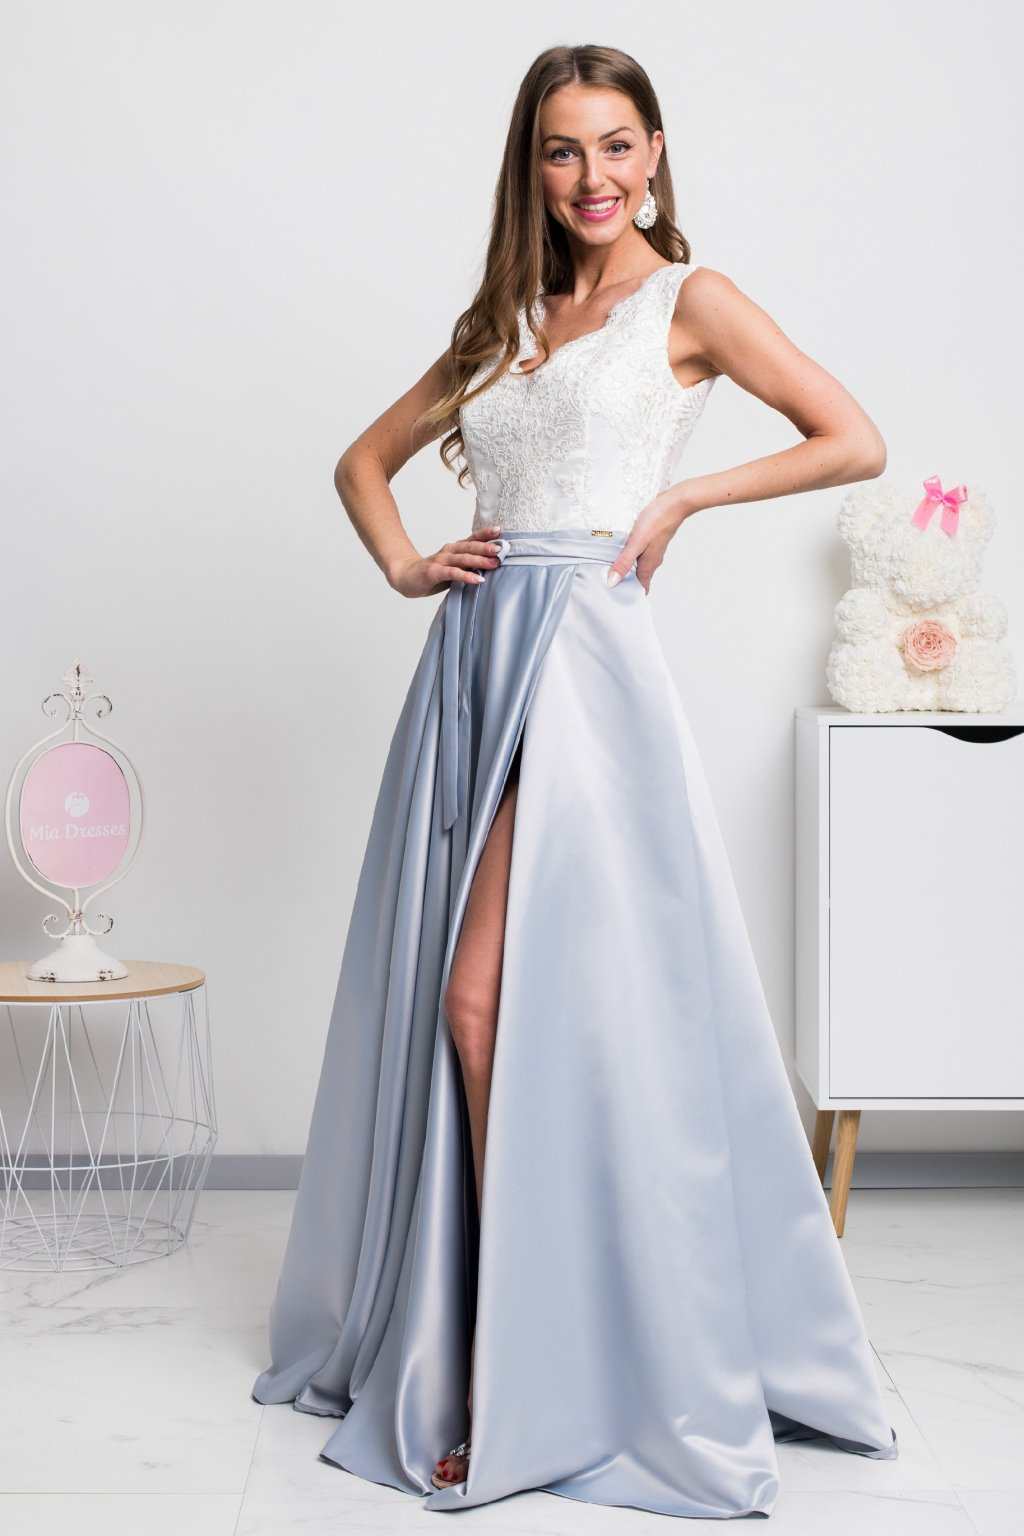 White-silver satin formal dress